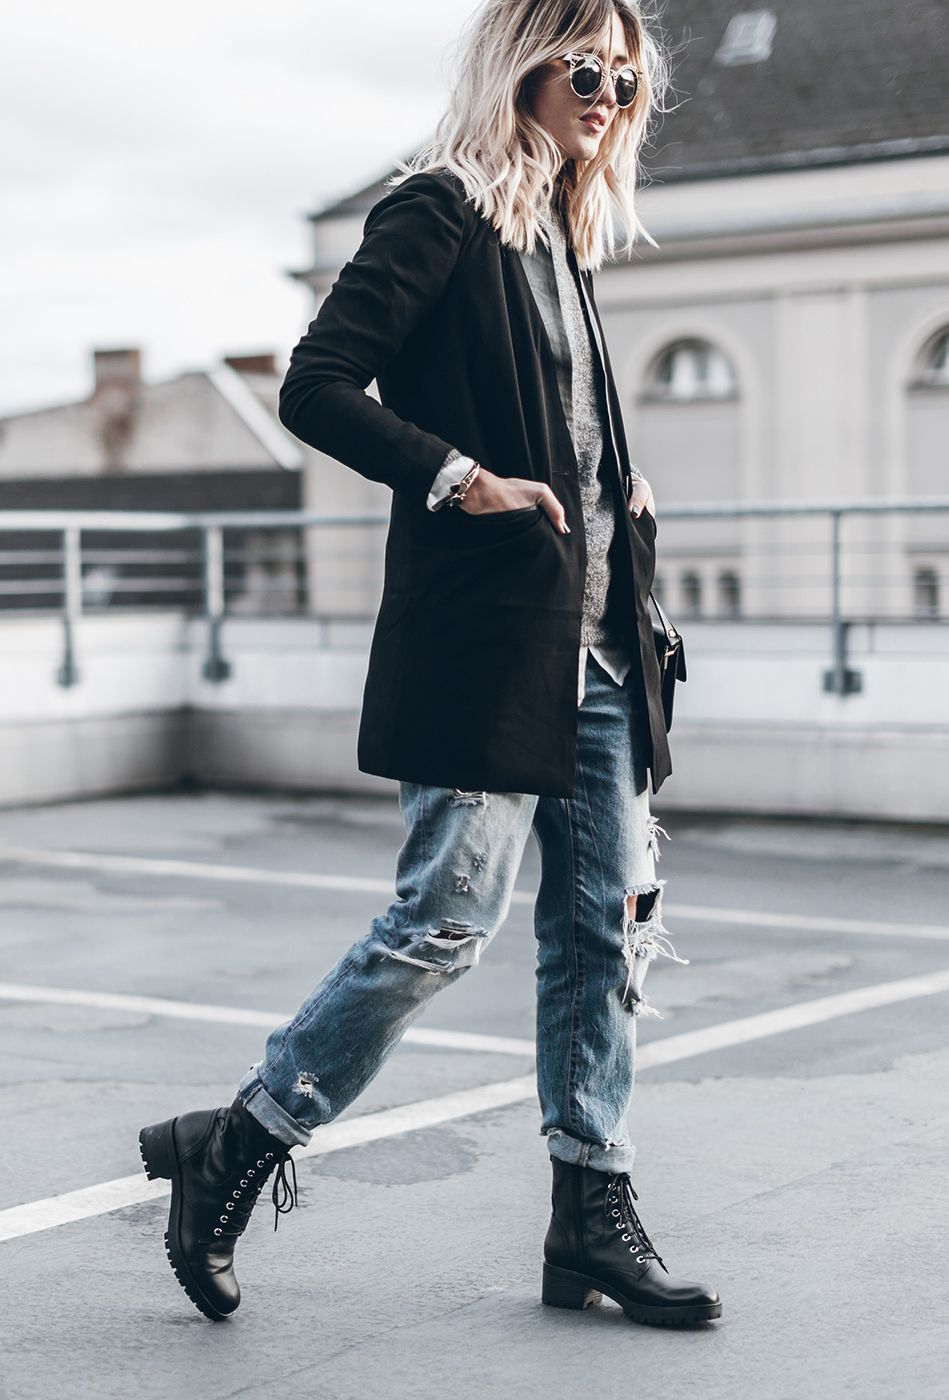 These Tomboy Outfits Will Show You How To Style Your Hair Awesomely